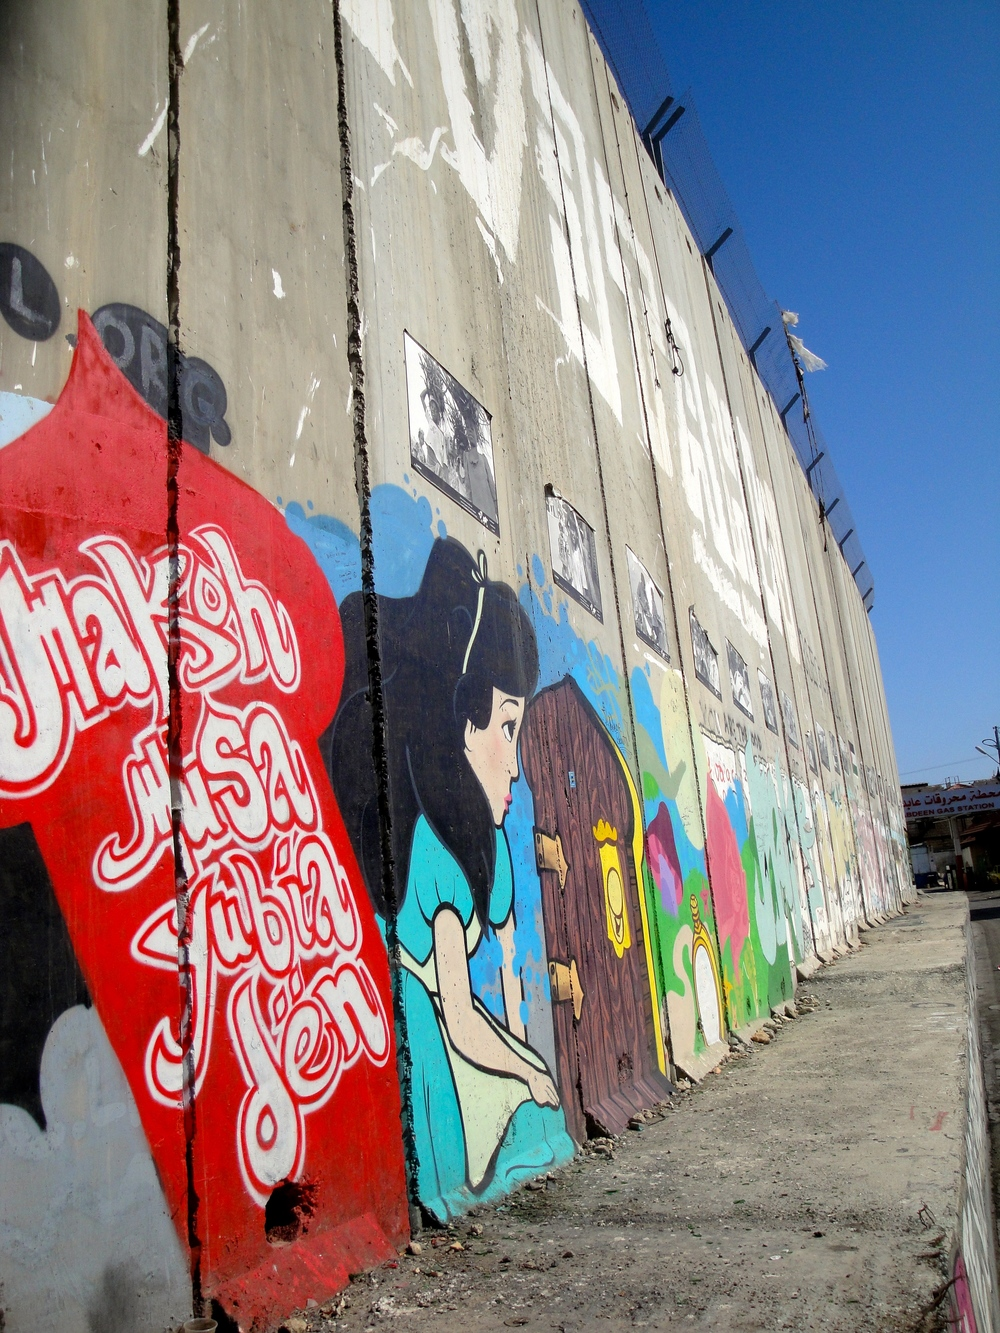 More separation wall art.